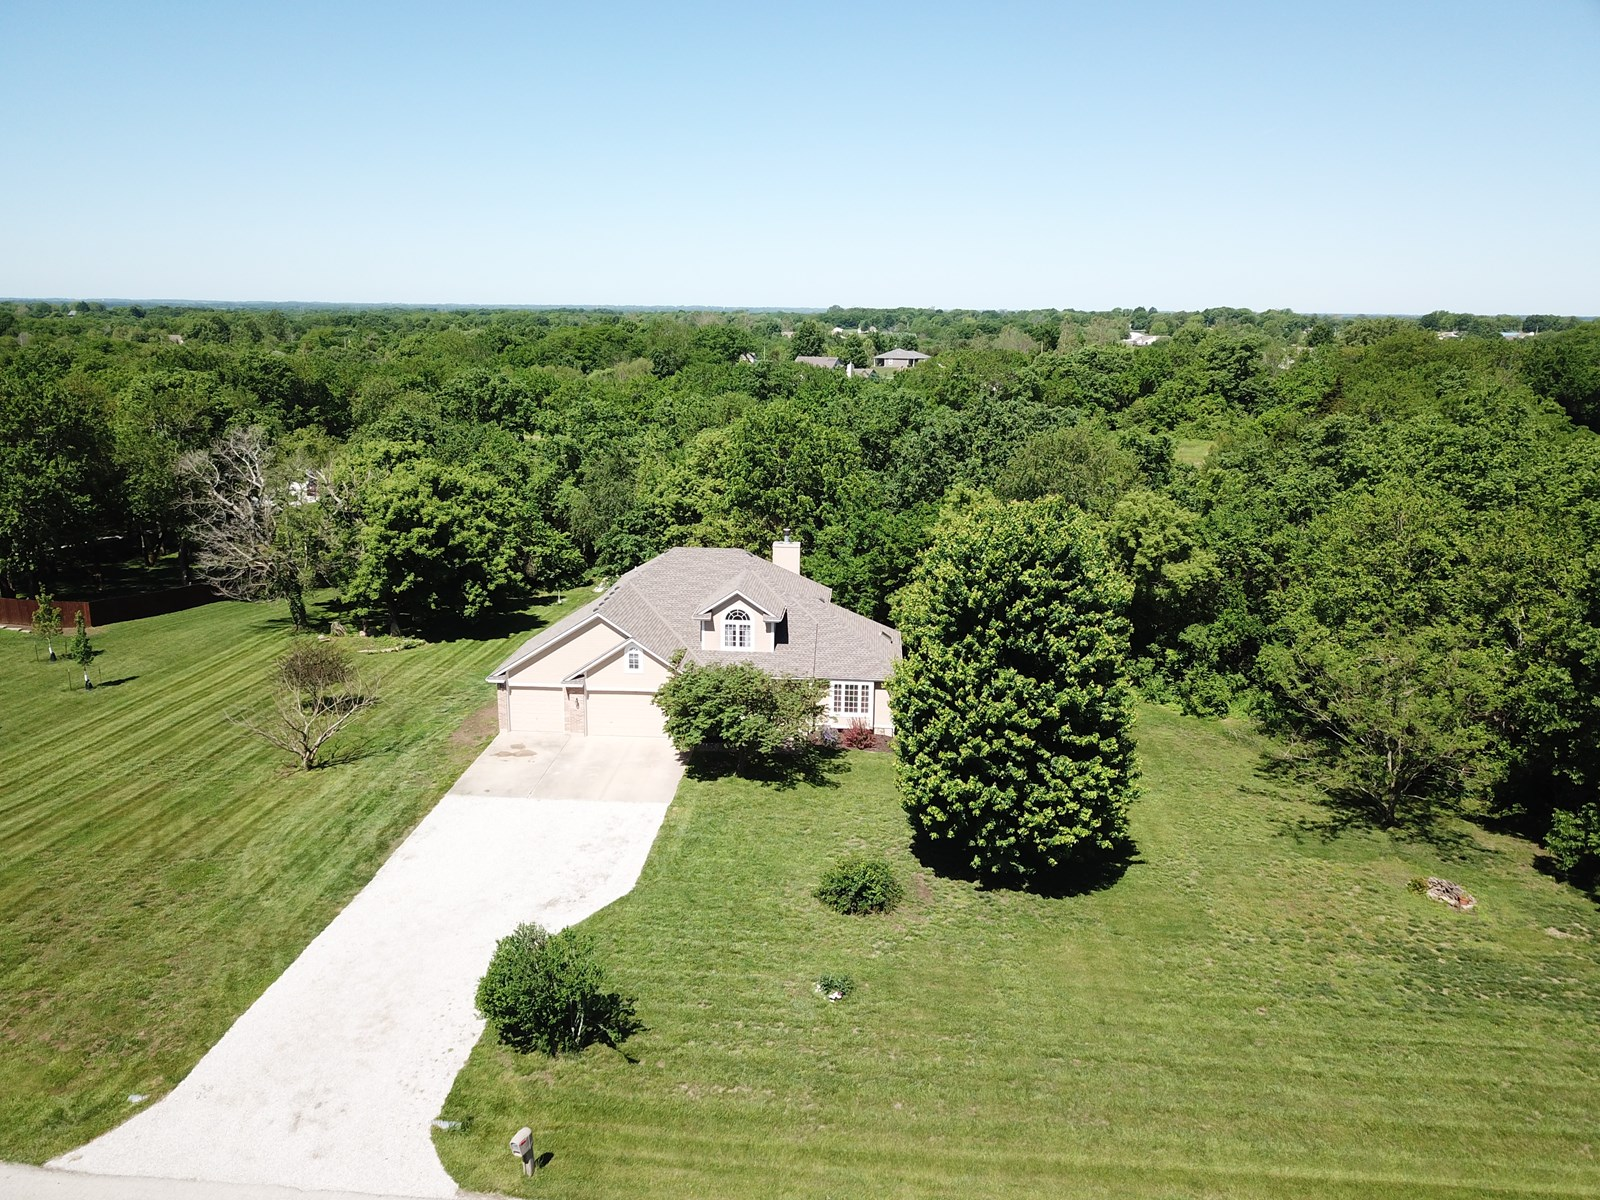 Home for Sale in Peculiar, MO on 3 acres in Cass County